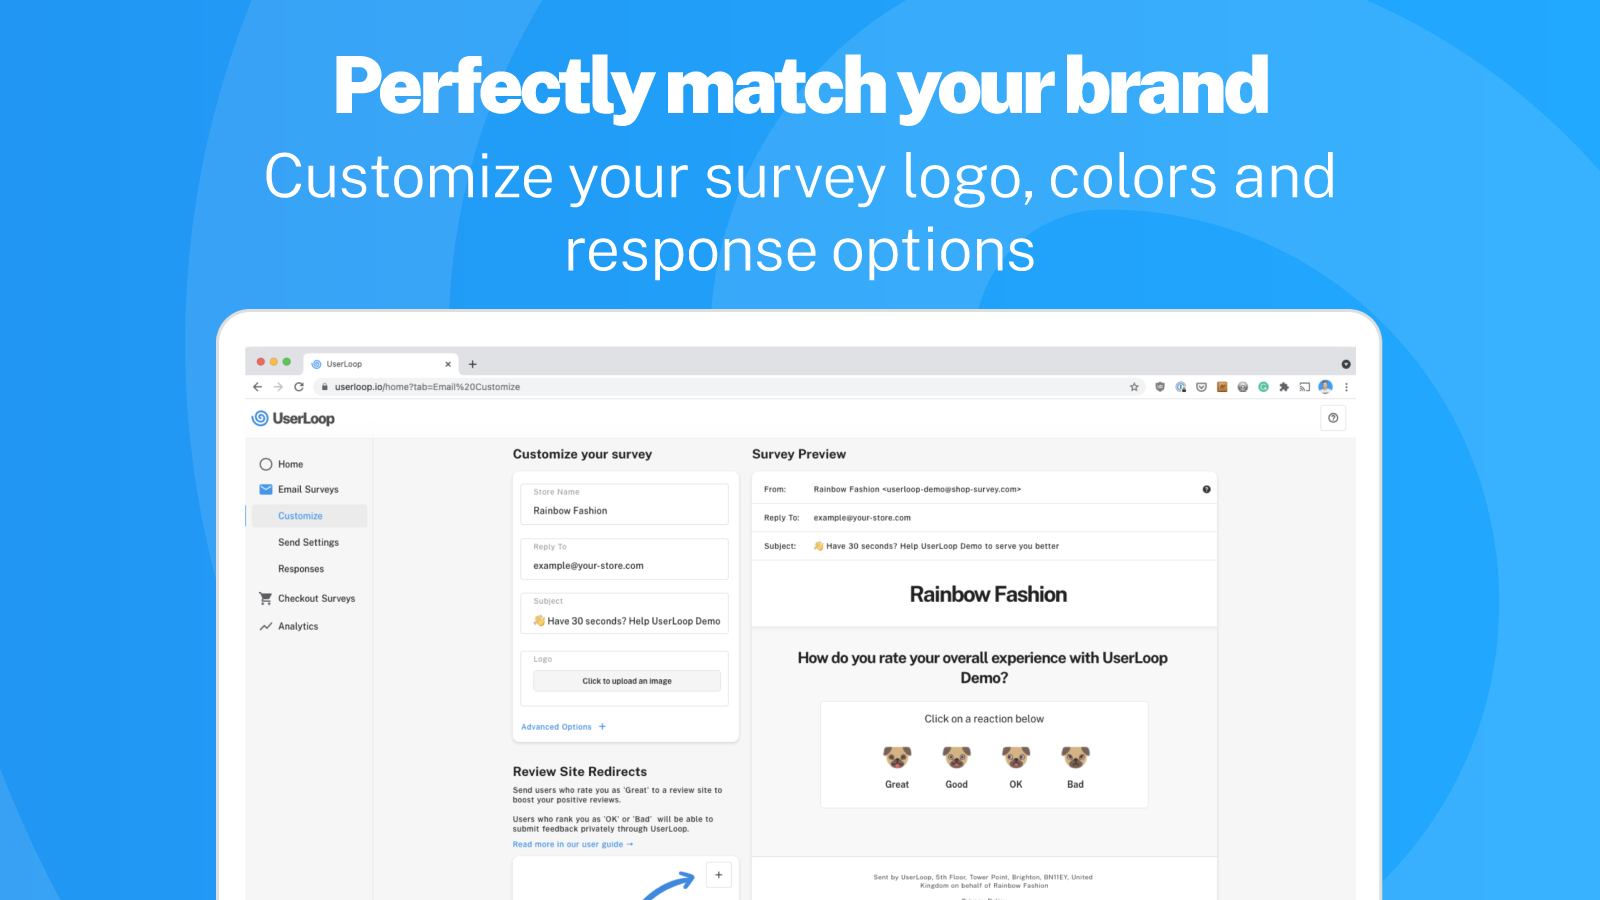 Customize your surveys to perfectly match your brand